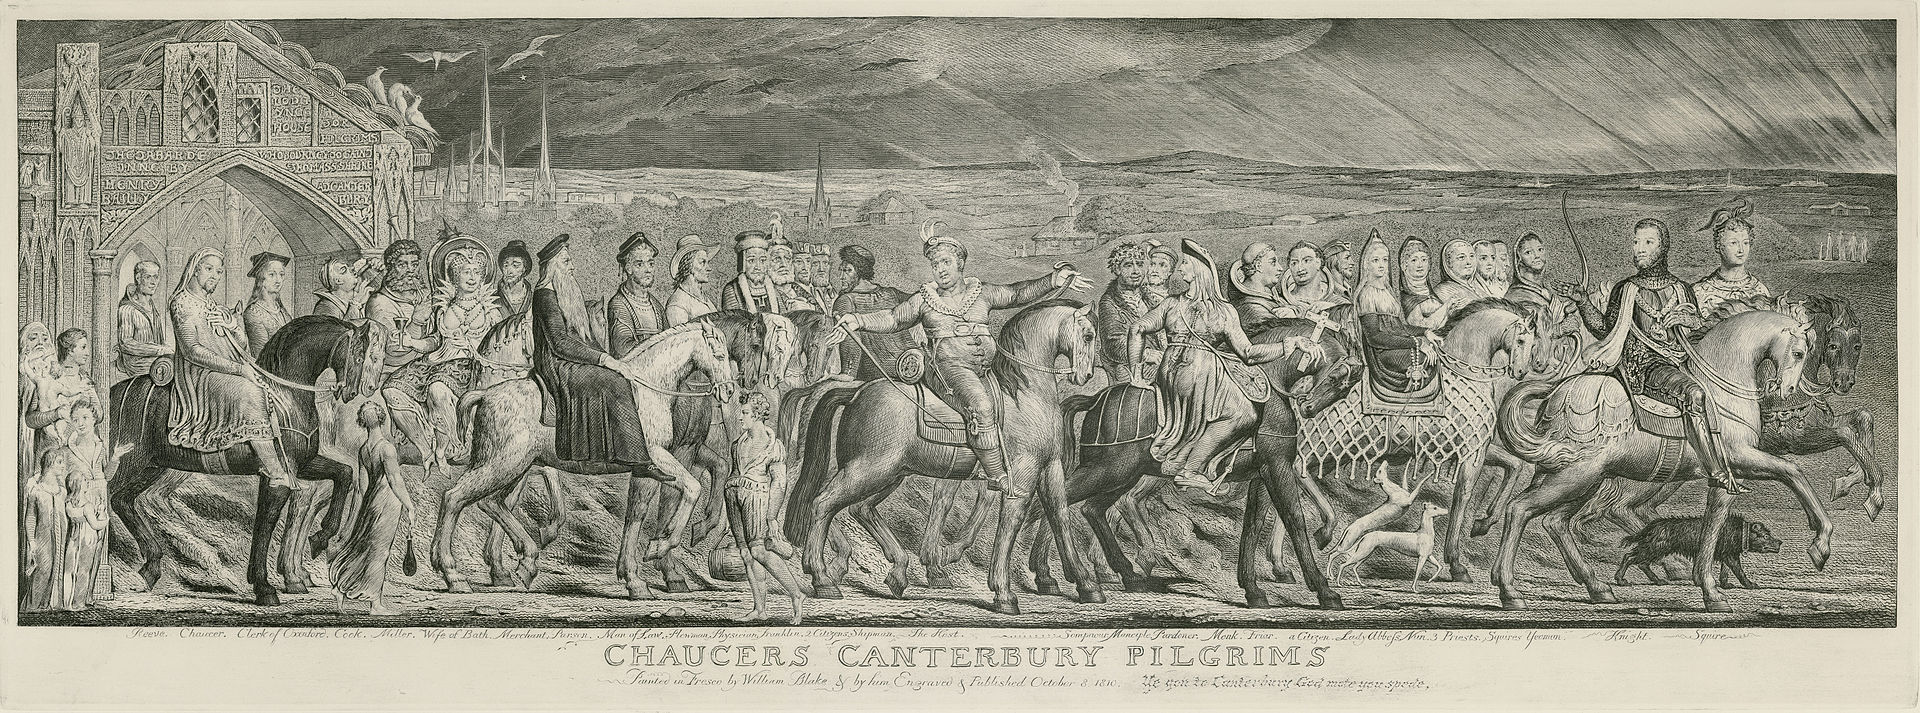 The Canterbury Pilgrims William Blake Public Domain